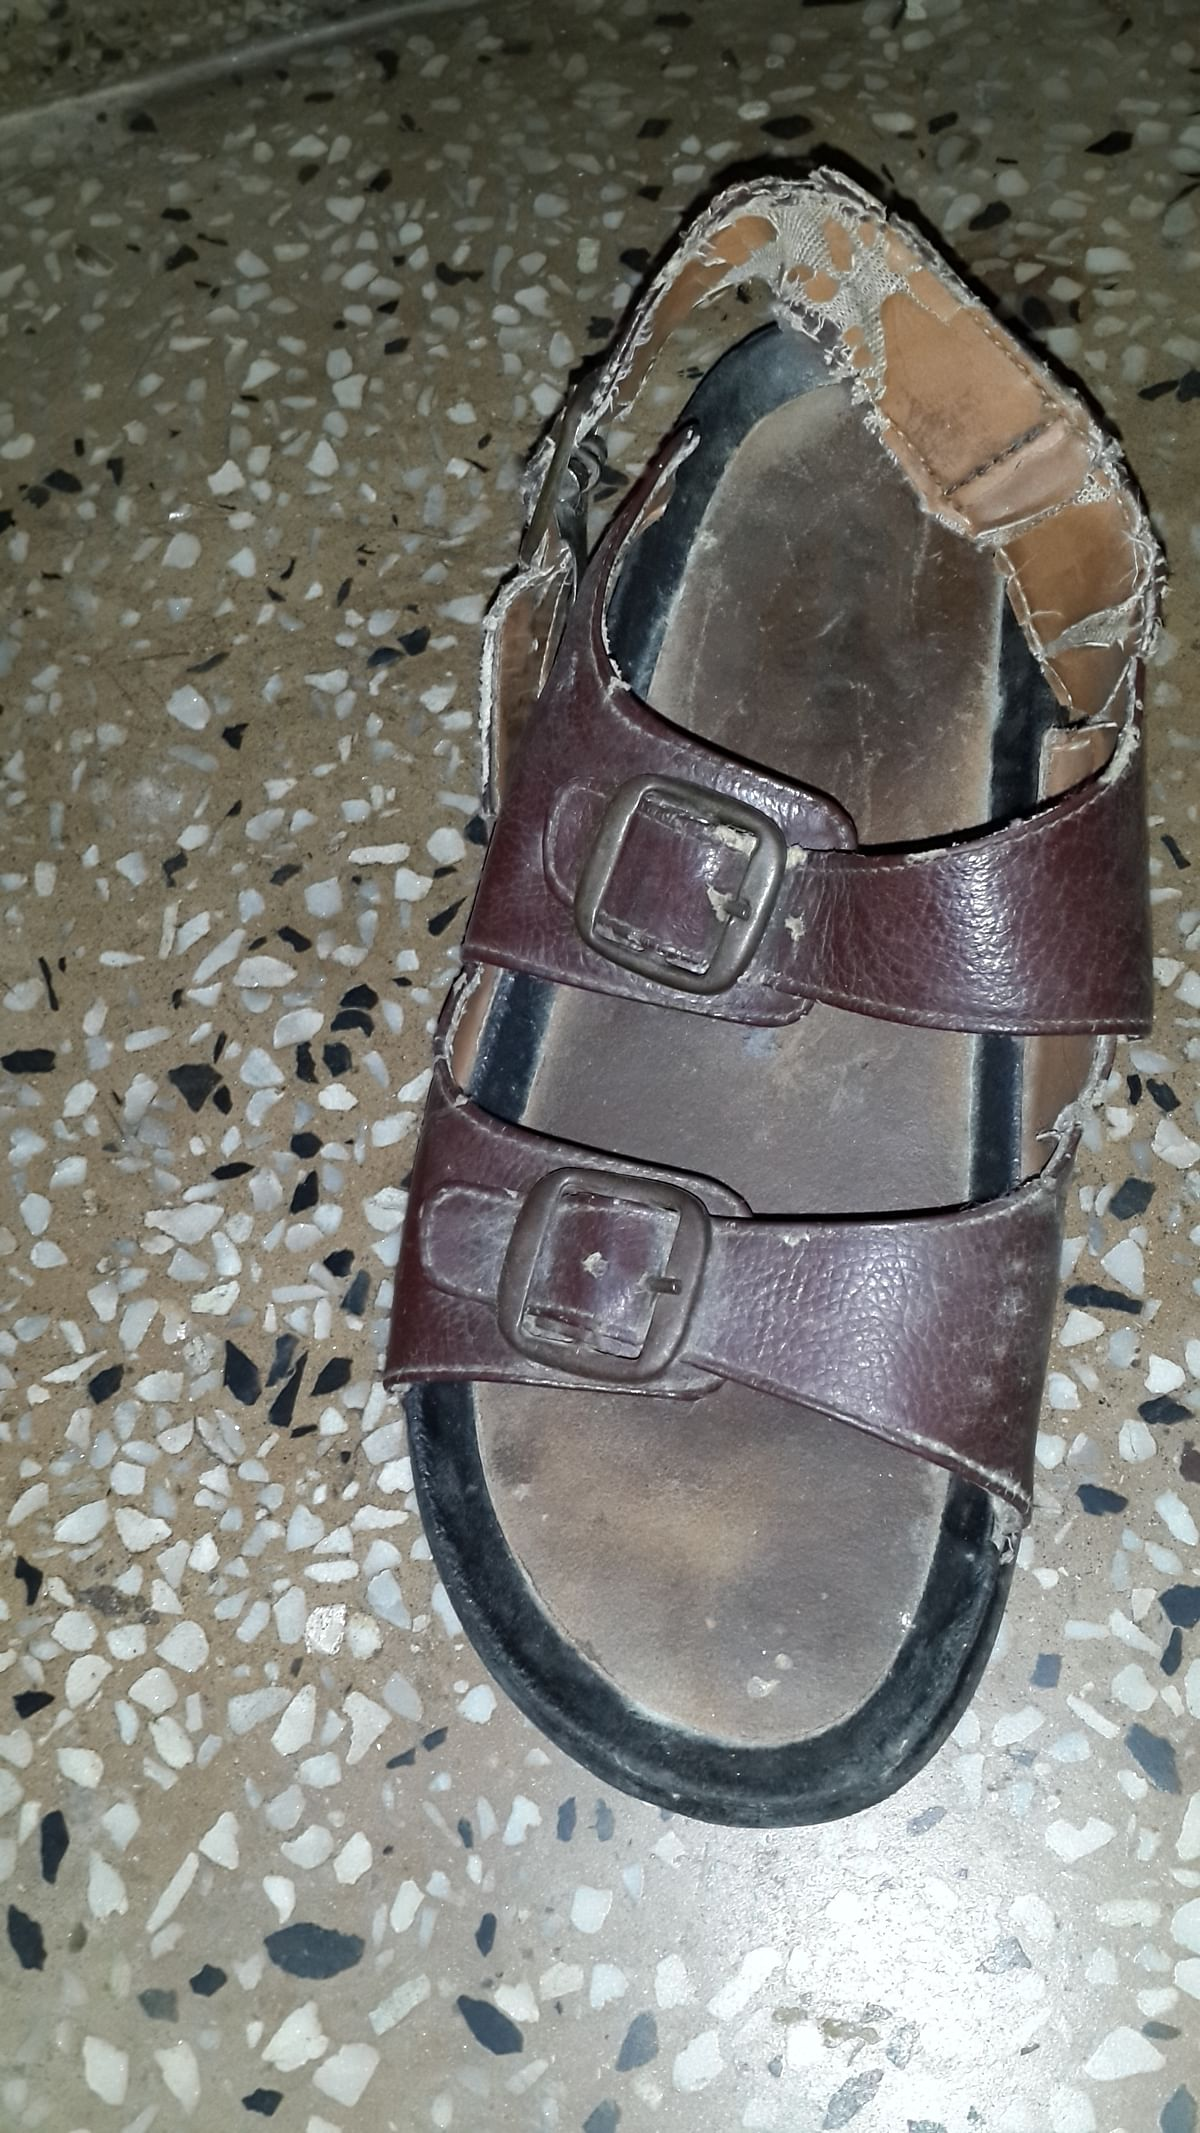 The much-contested pair of sandals. (Photo Courtesy: Sangeeta Murthi Sahgal)